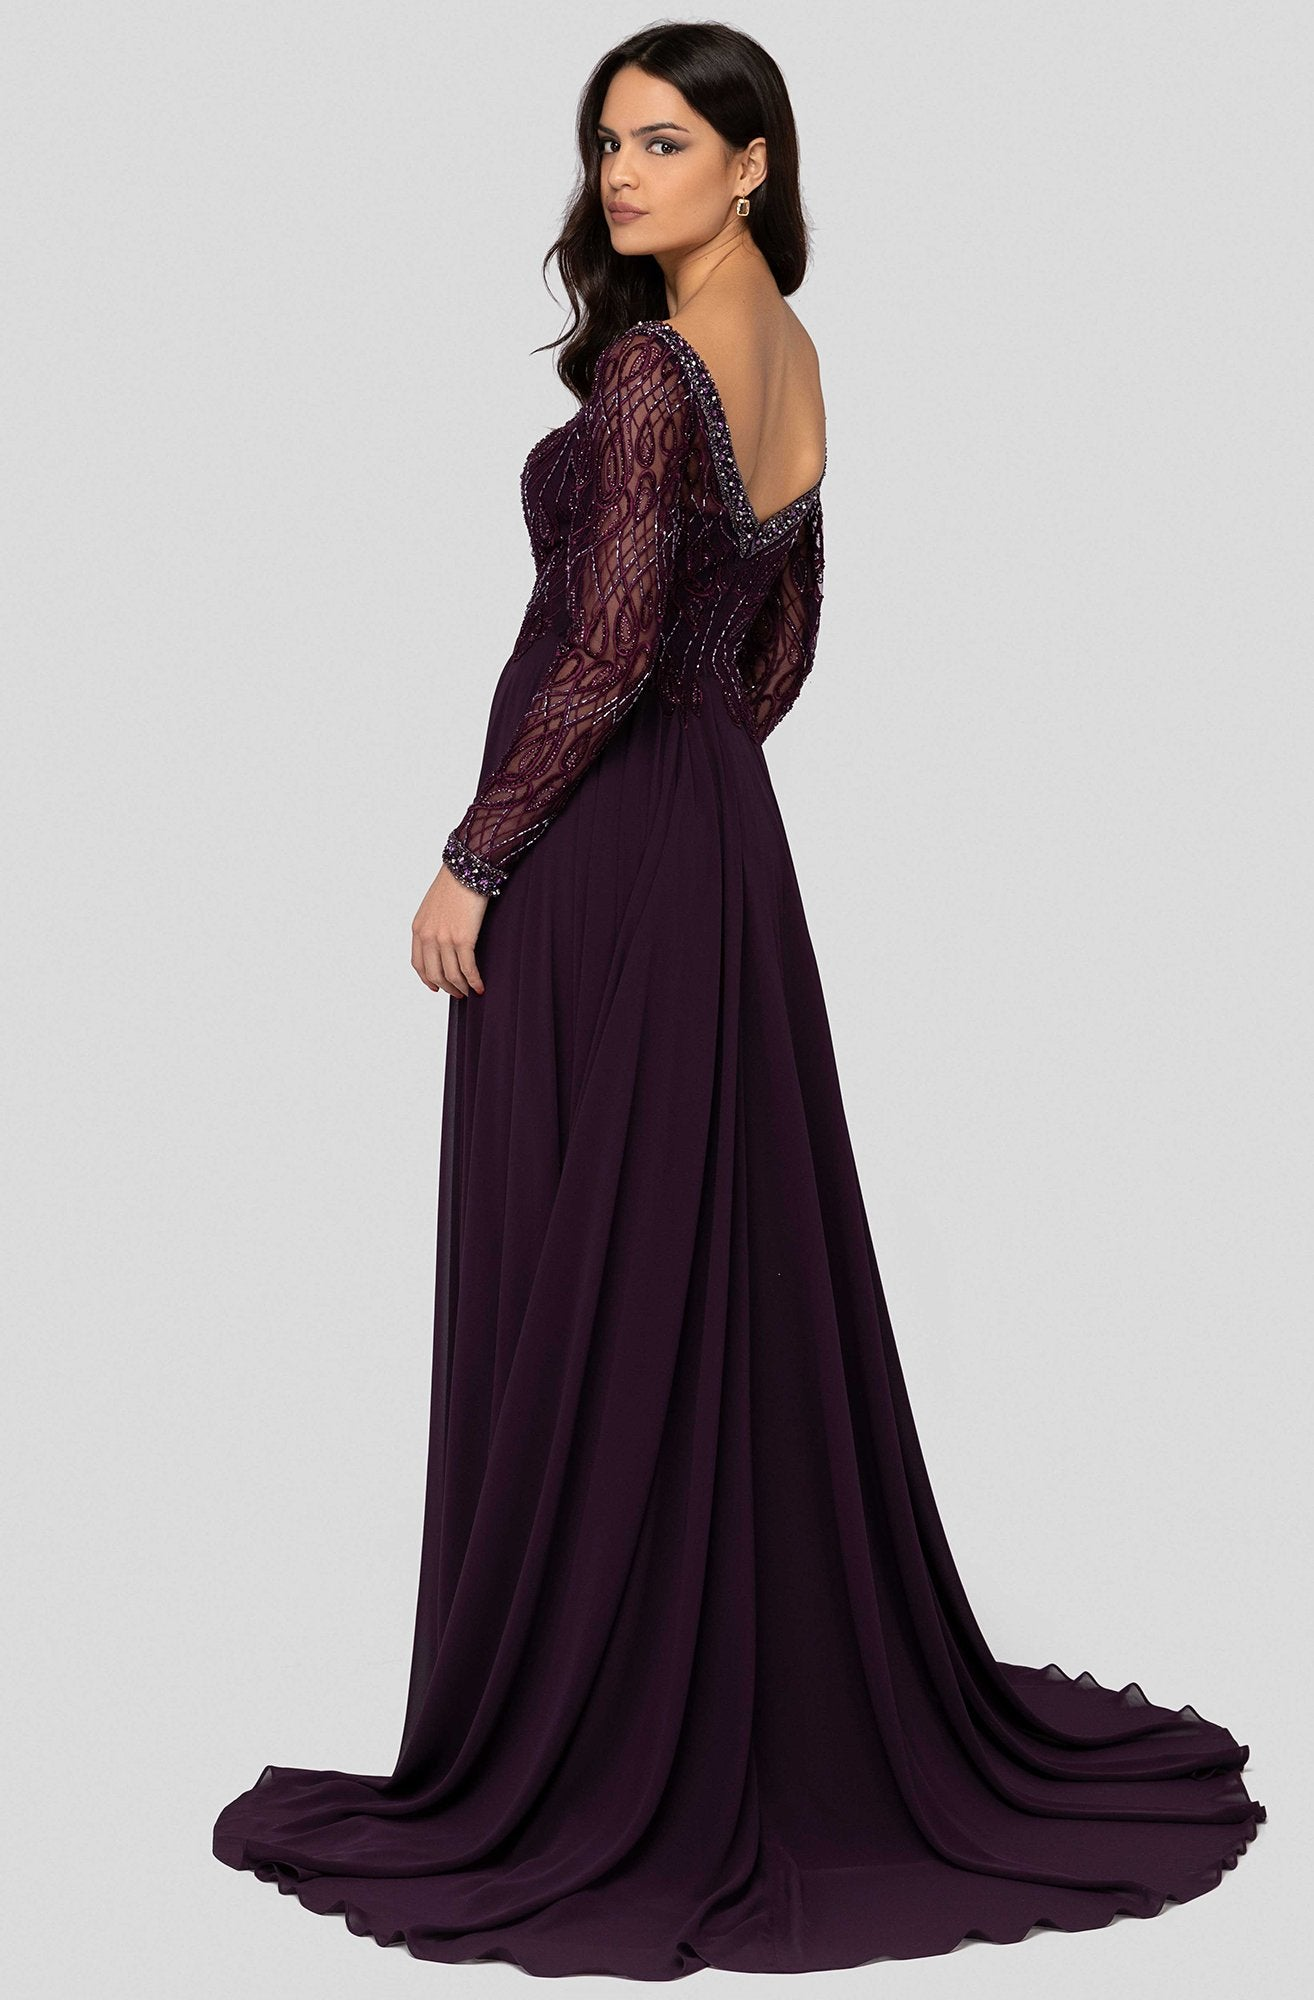 Terani Couture - 1913M9419 Embellished Long Sleeve Bateau A-line Dress In Purple